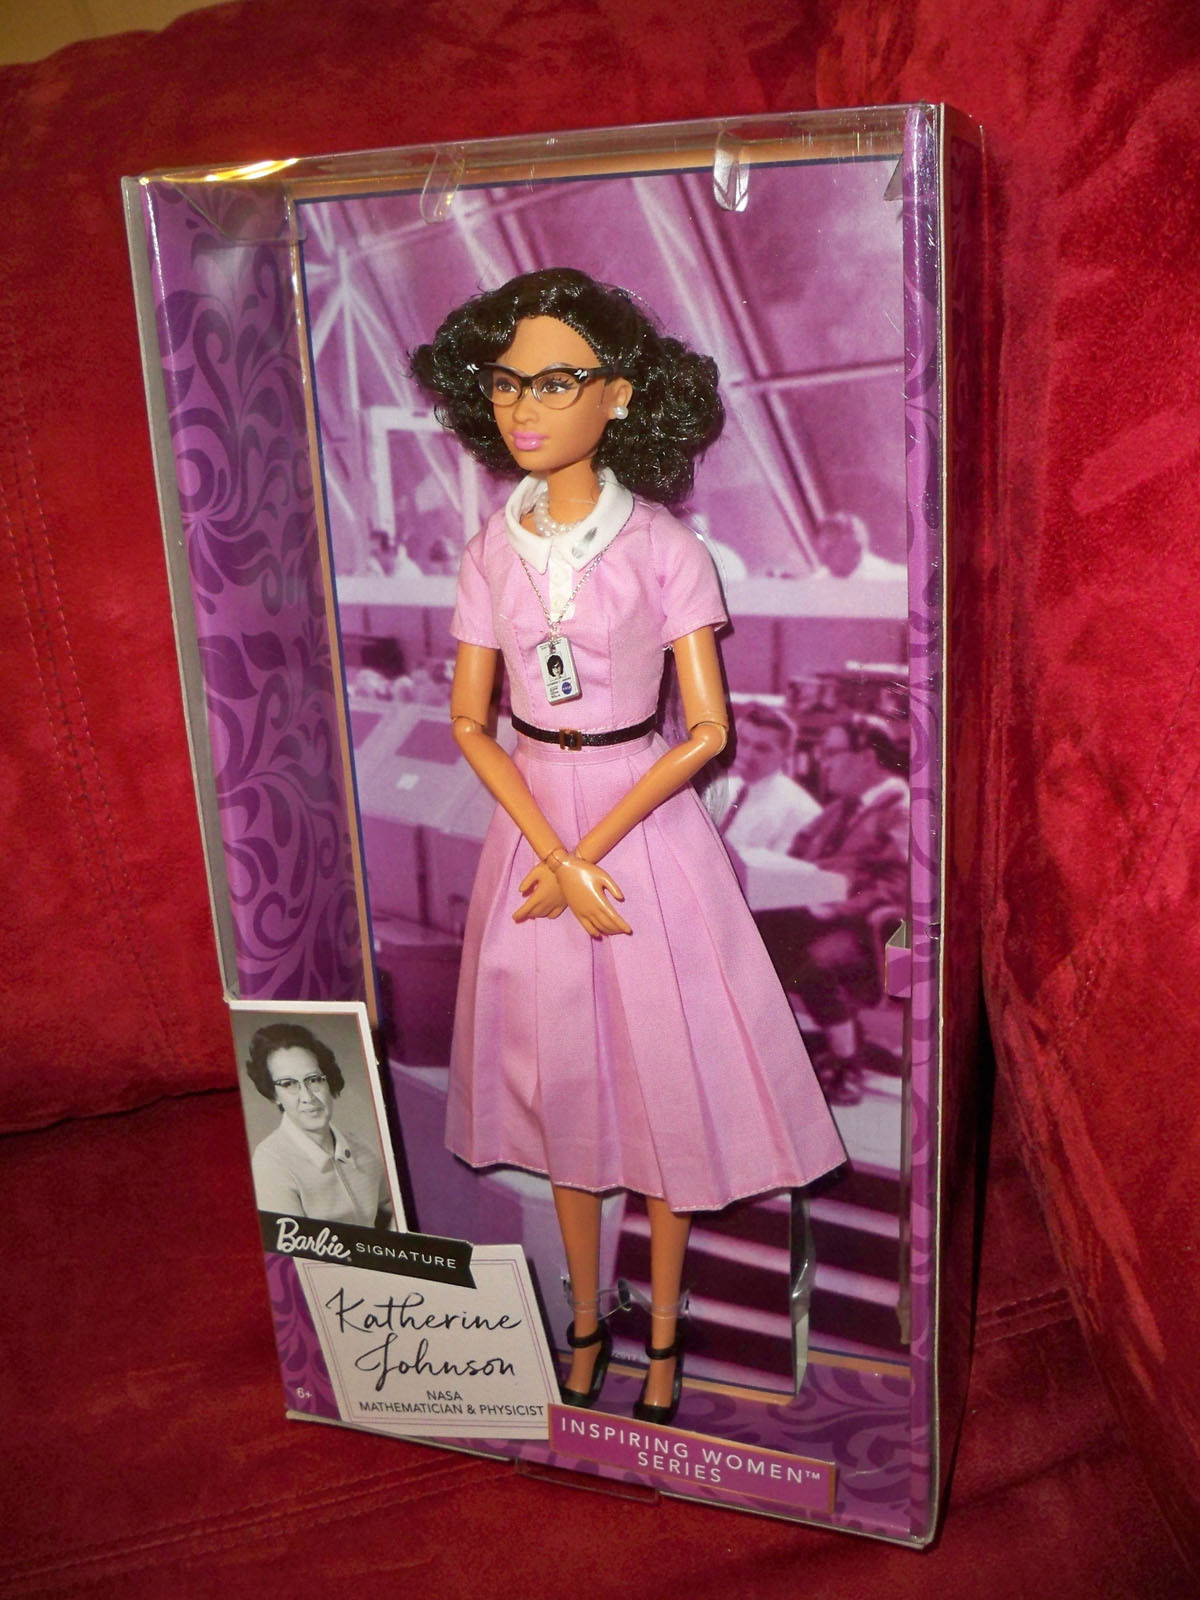 Barbie Inspiring Women Series Katherine Johnson Doll Limited Release Sold Out!